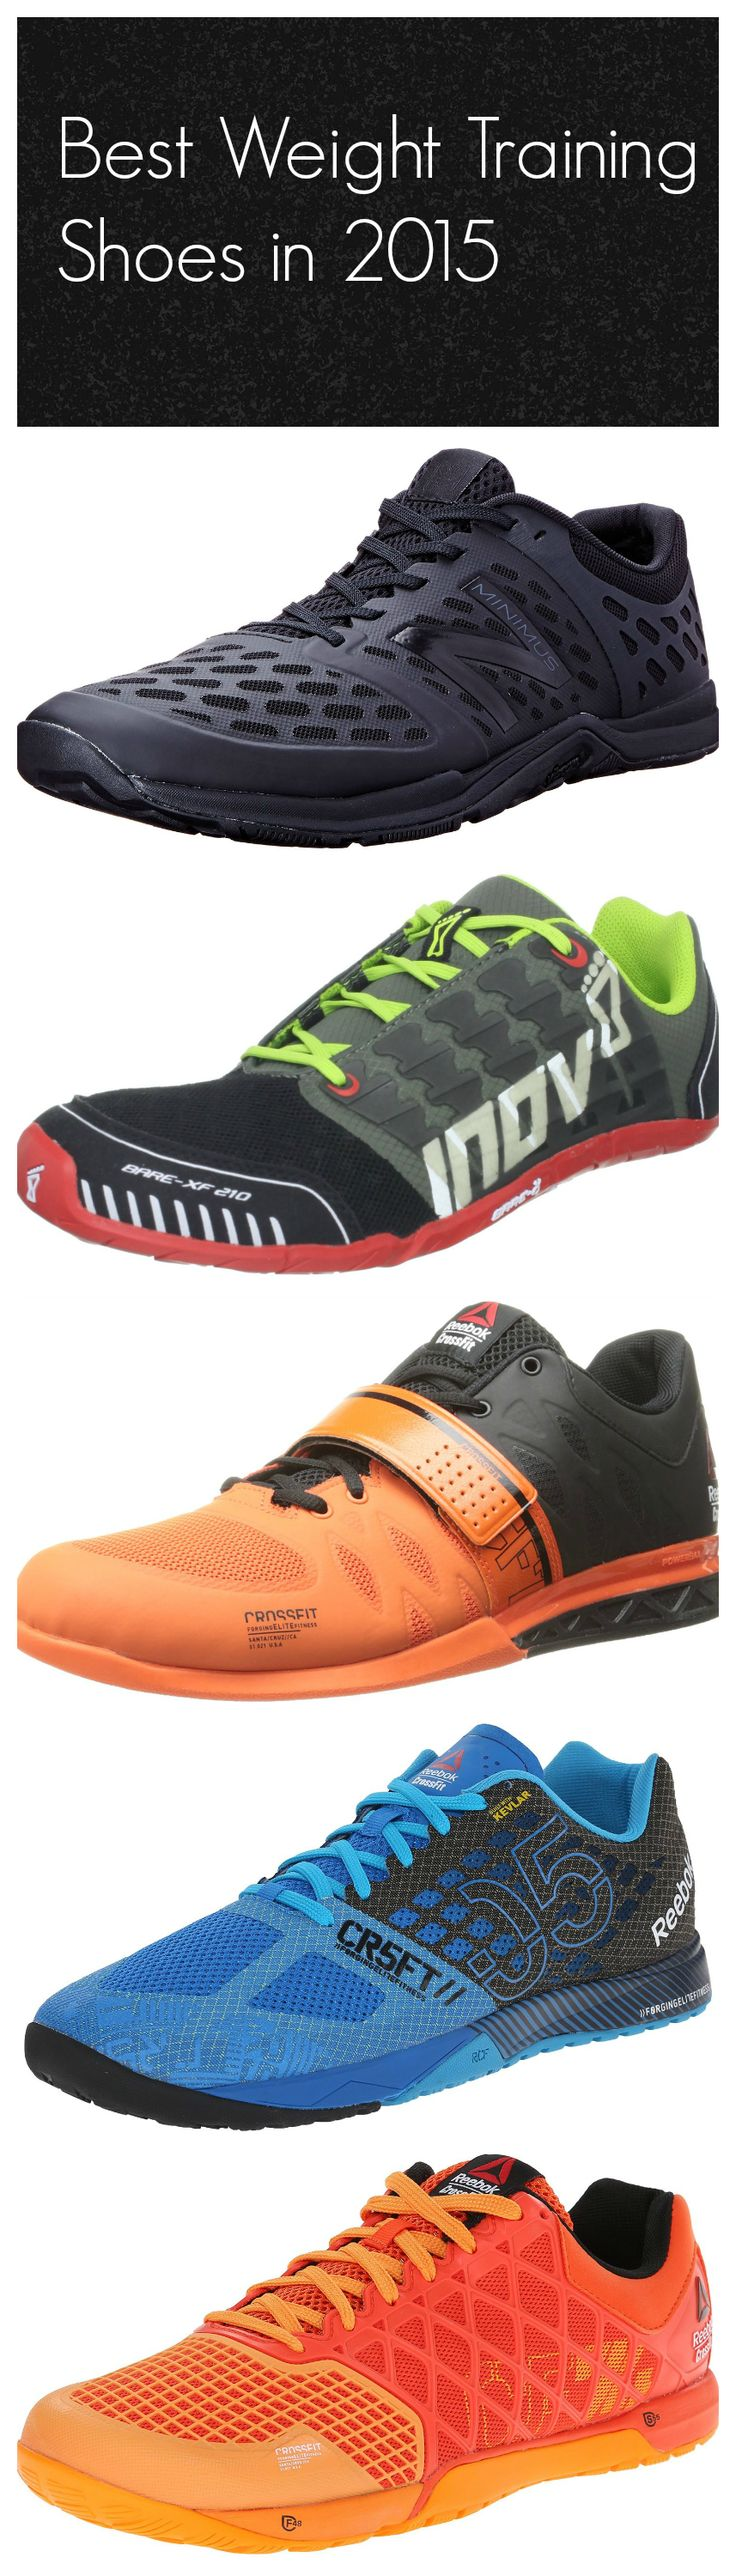 Best Weight Training Shoes in 2015